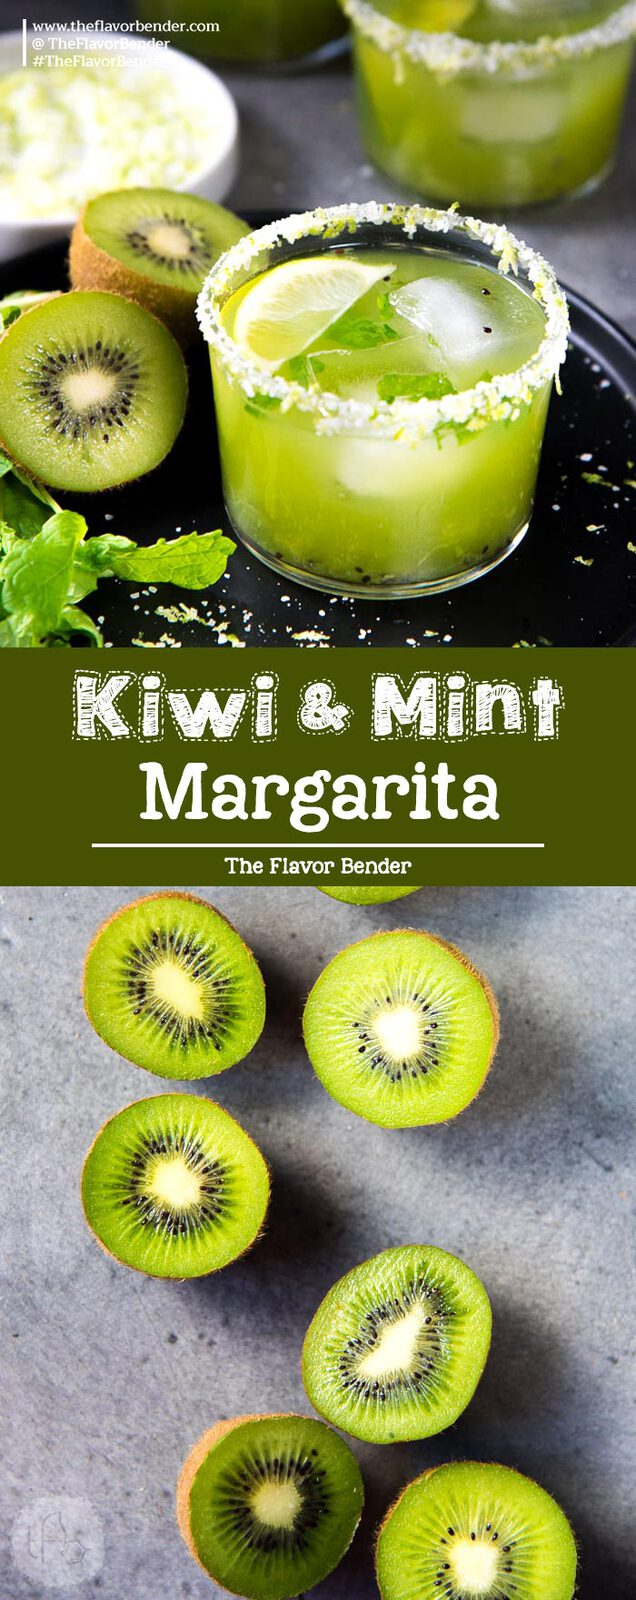 Mint Kiwi Margarita - A delicious margarita with tangy kiwi fruit, and refreshing mint! Perfect Summer sipper. Make individual cocktails or a batch mint kiwi margarita punch! #Margarita #PunchRecipes #KiwiFruit #Cocktails